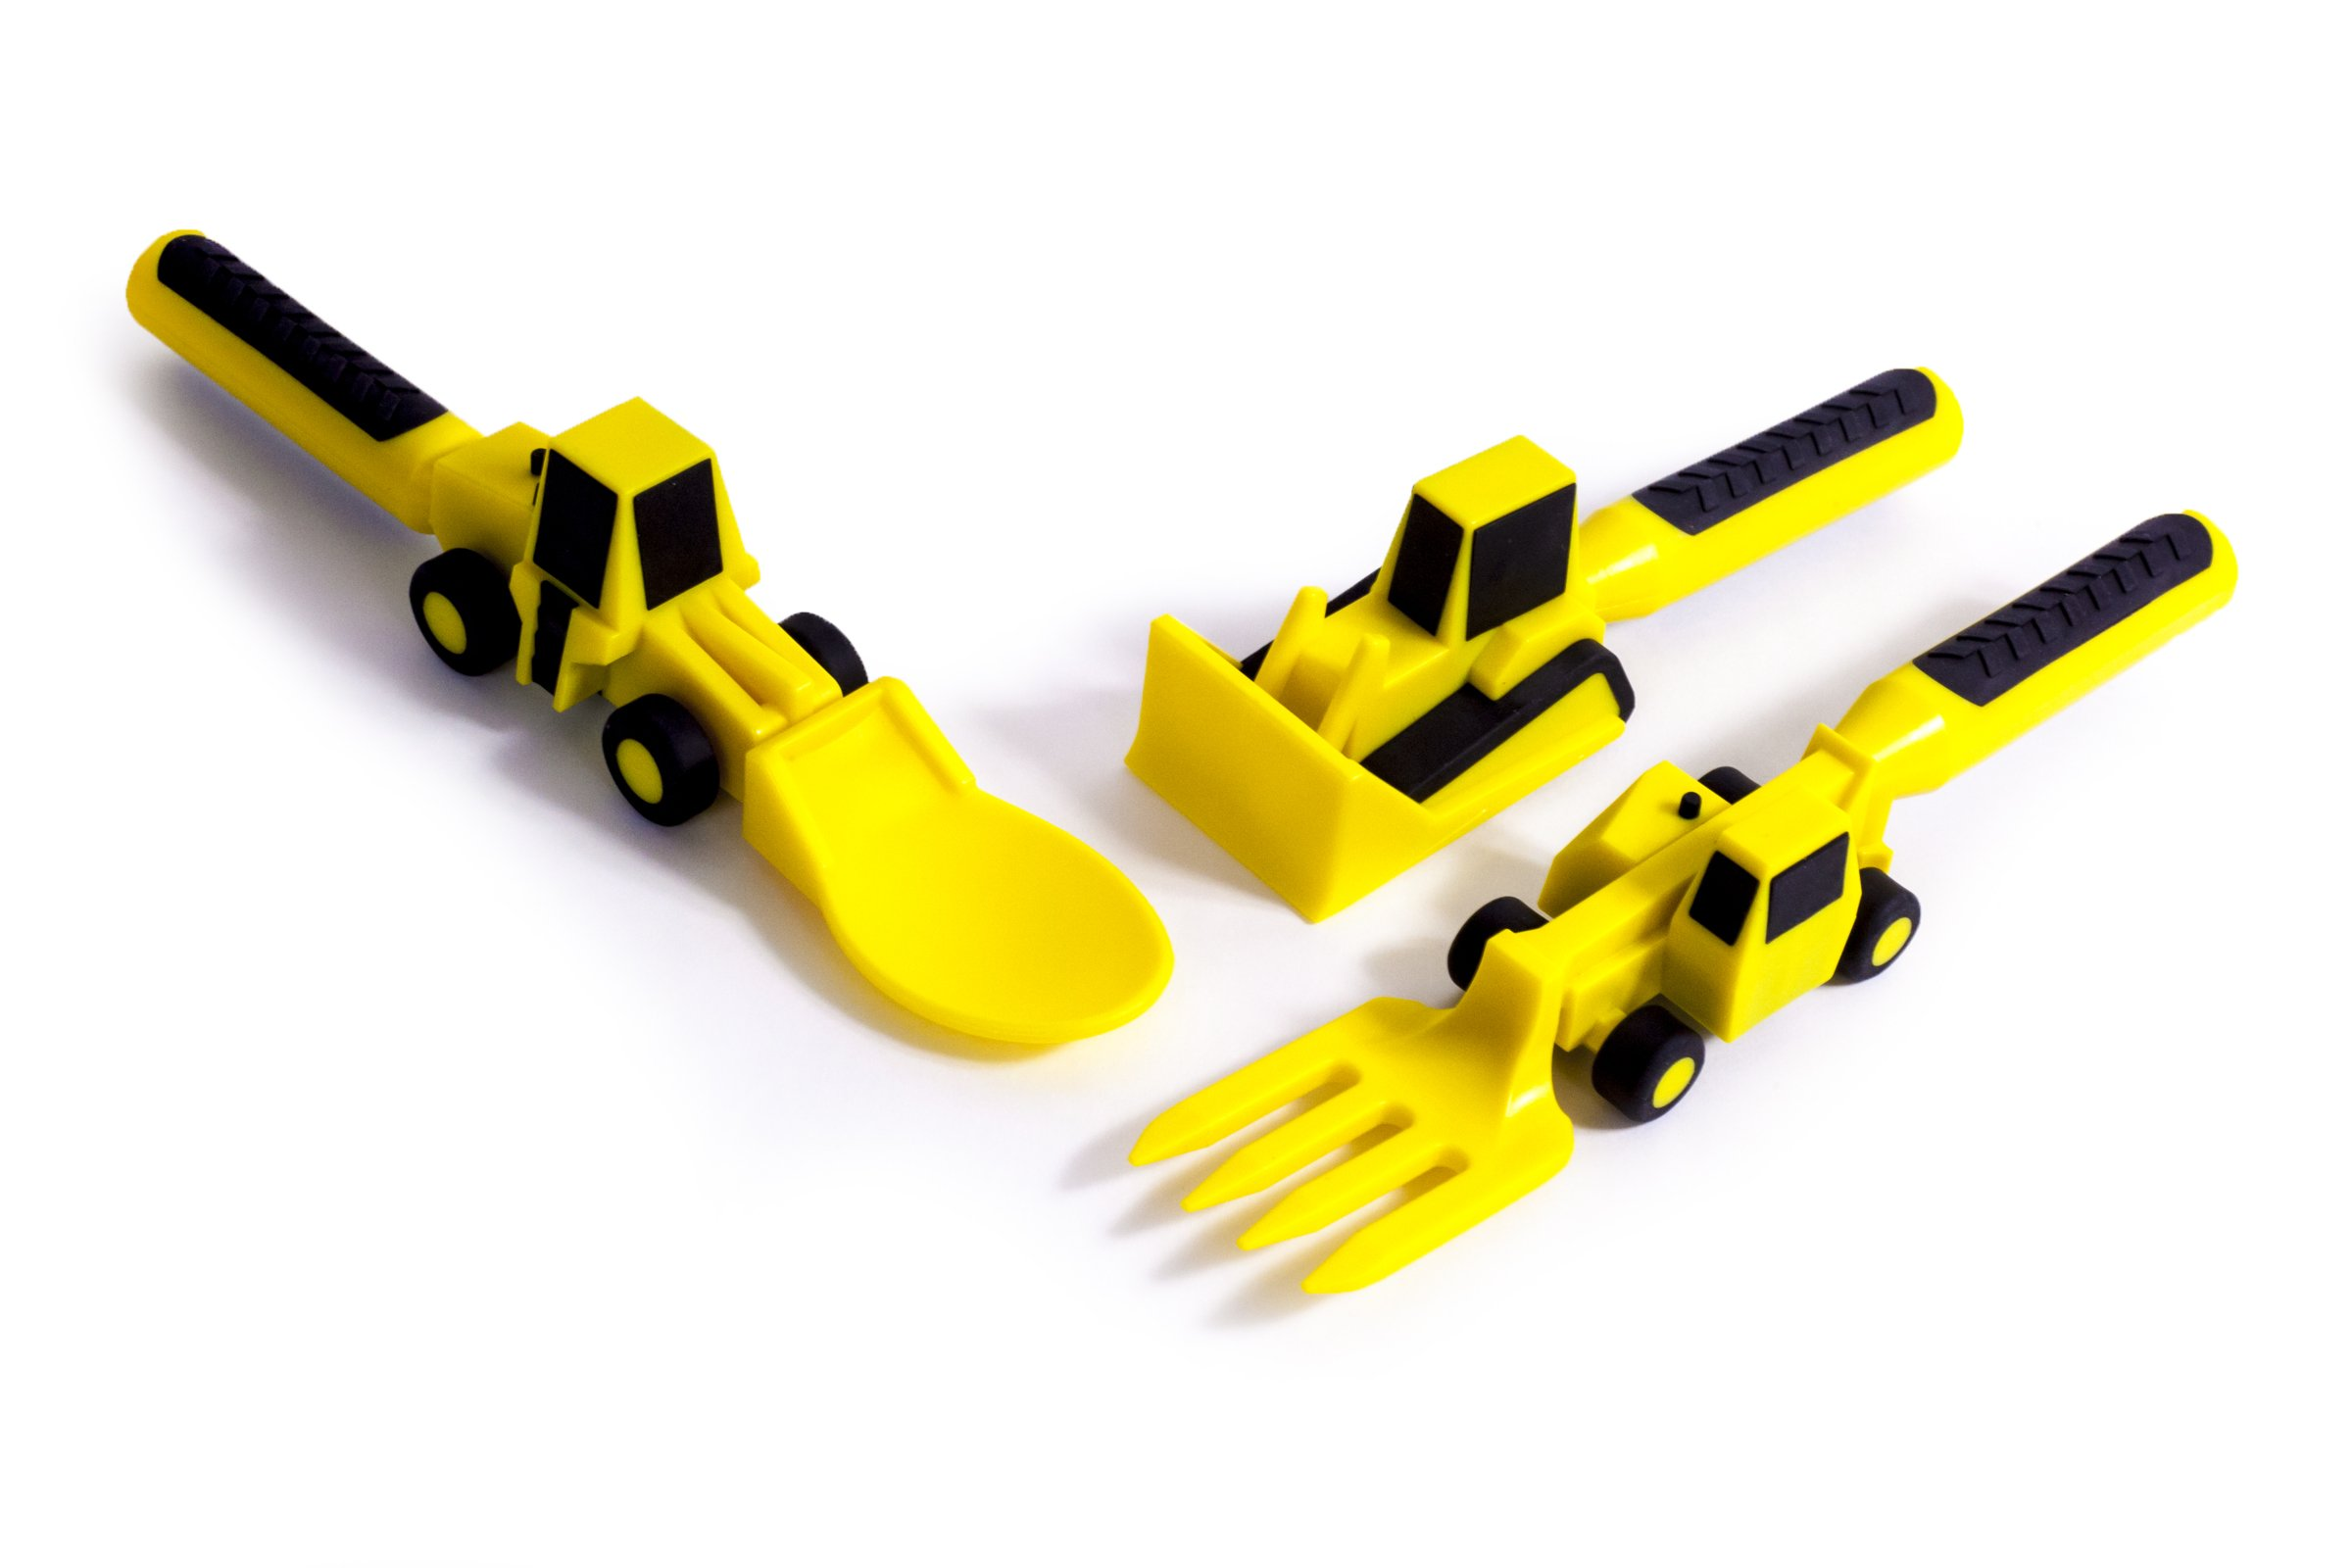 Constructive-Eating-Set-of-Construction-Utensils-for-Toddlers-Infants-Babies-and-Kids-Flatware-Toys-are-Made-with-FDA-Approved-Materials-for-Safe-and-Fun-Eating